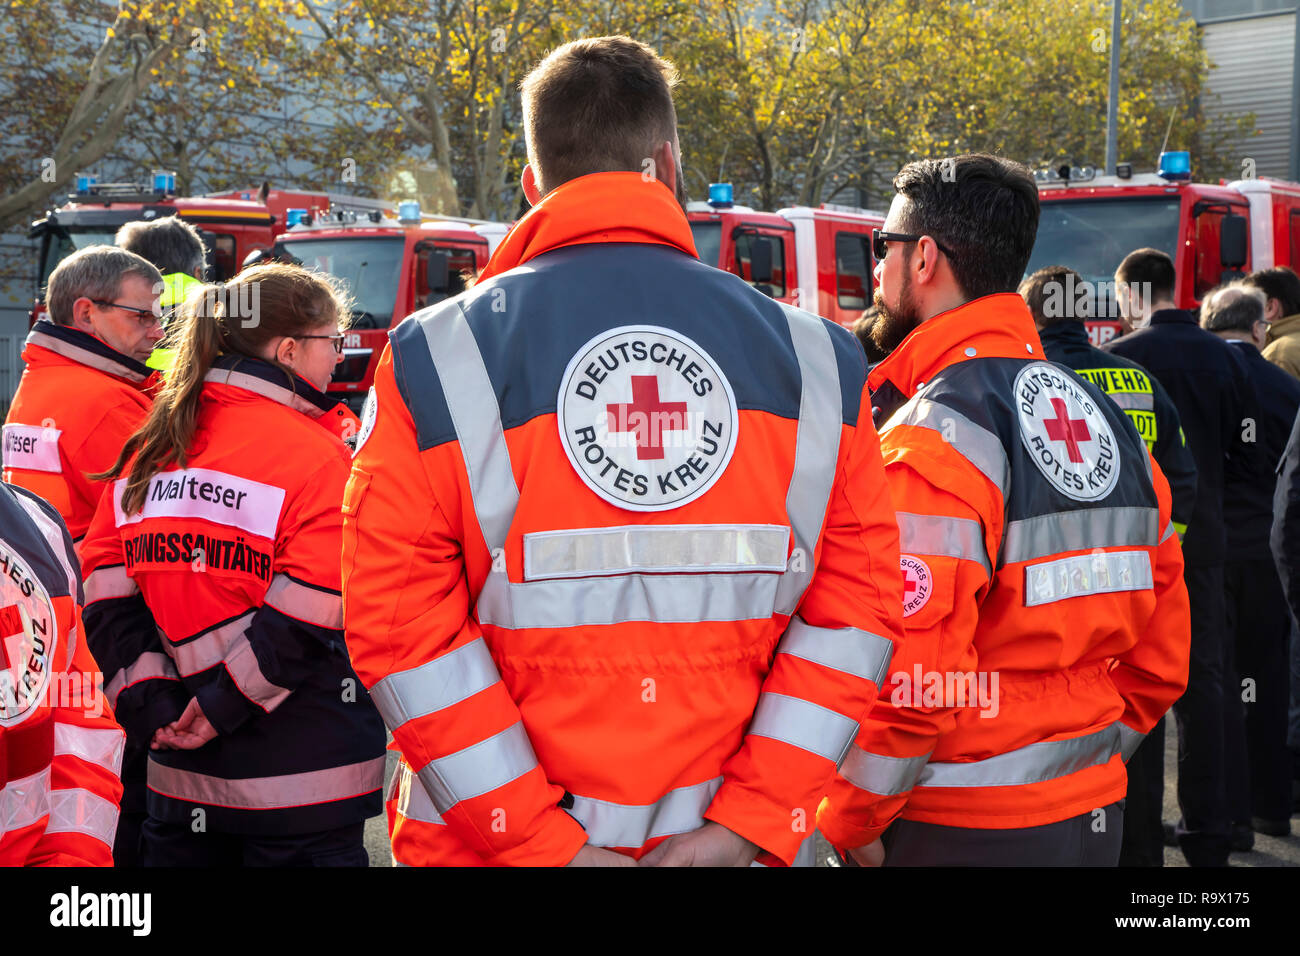 Rescue Workers, Rescue Service, Volunteers, Aid Organizations, Maltese aid service, German Red Cross, - Stock Image